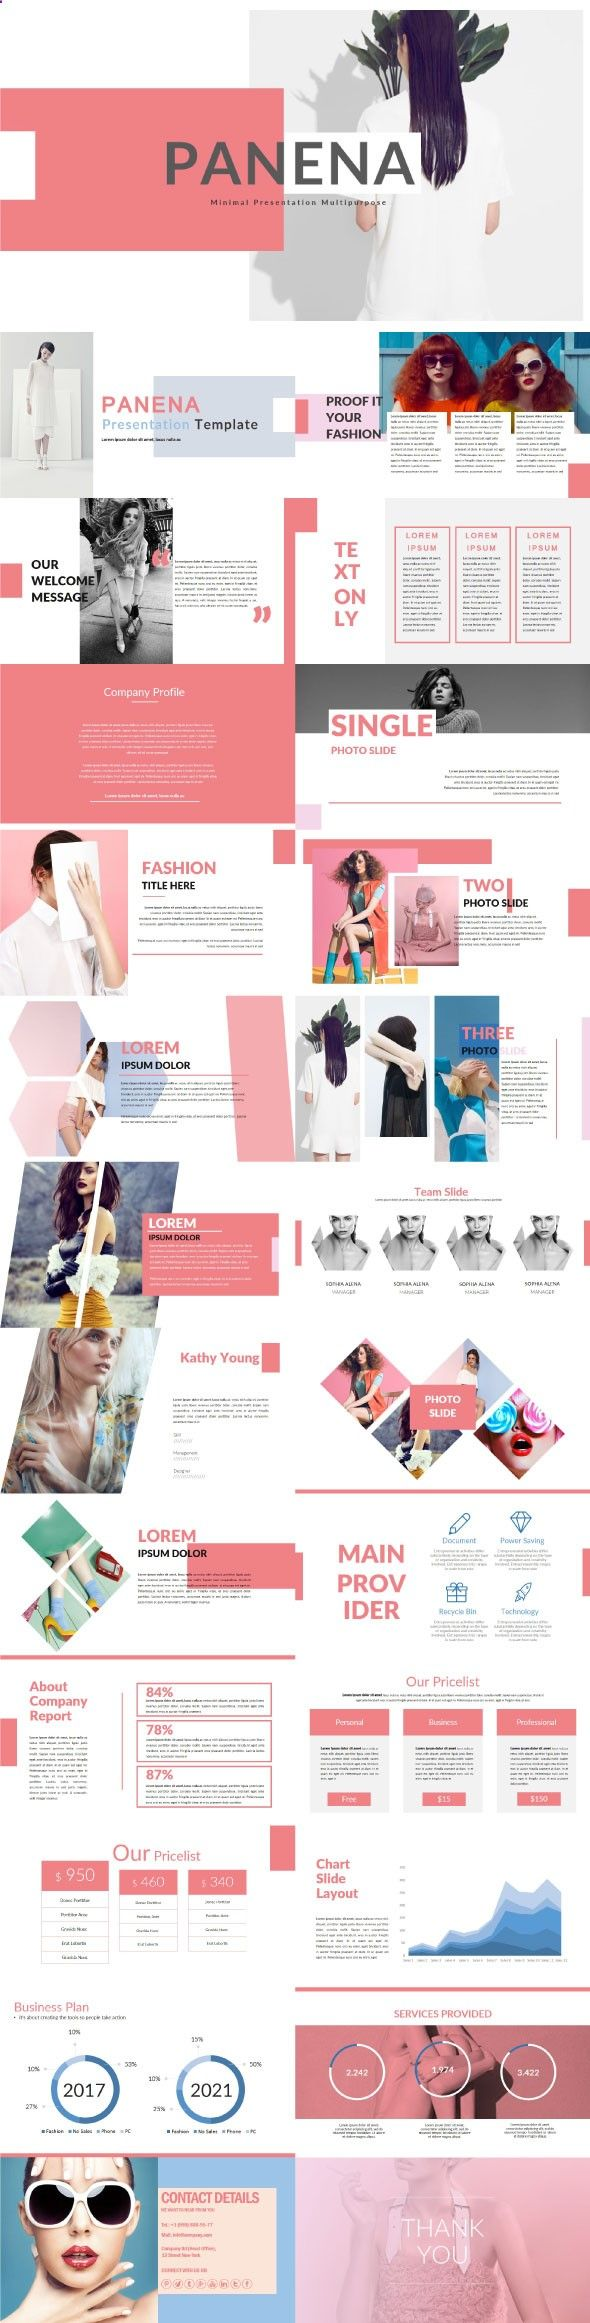 Panena #Multipurpose Template - Creative #PowerPoint #Templates Download here: graphicriver.net/...